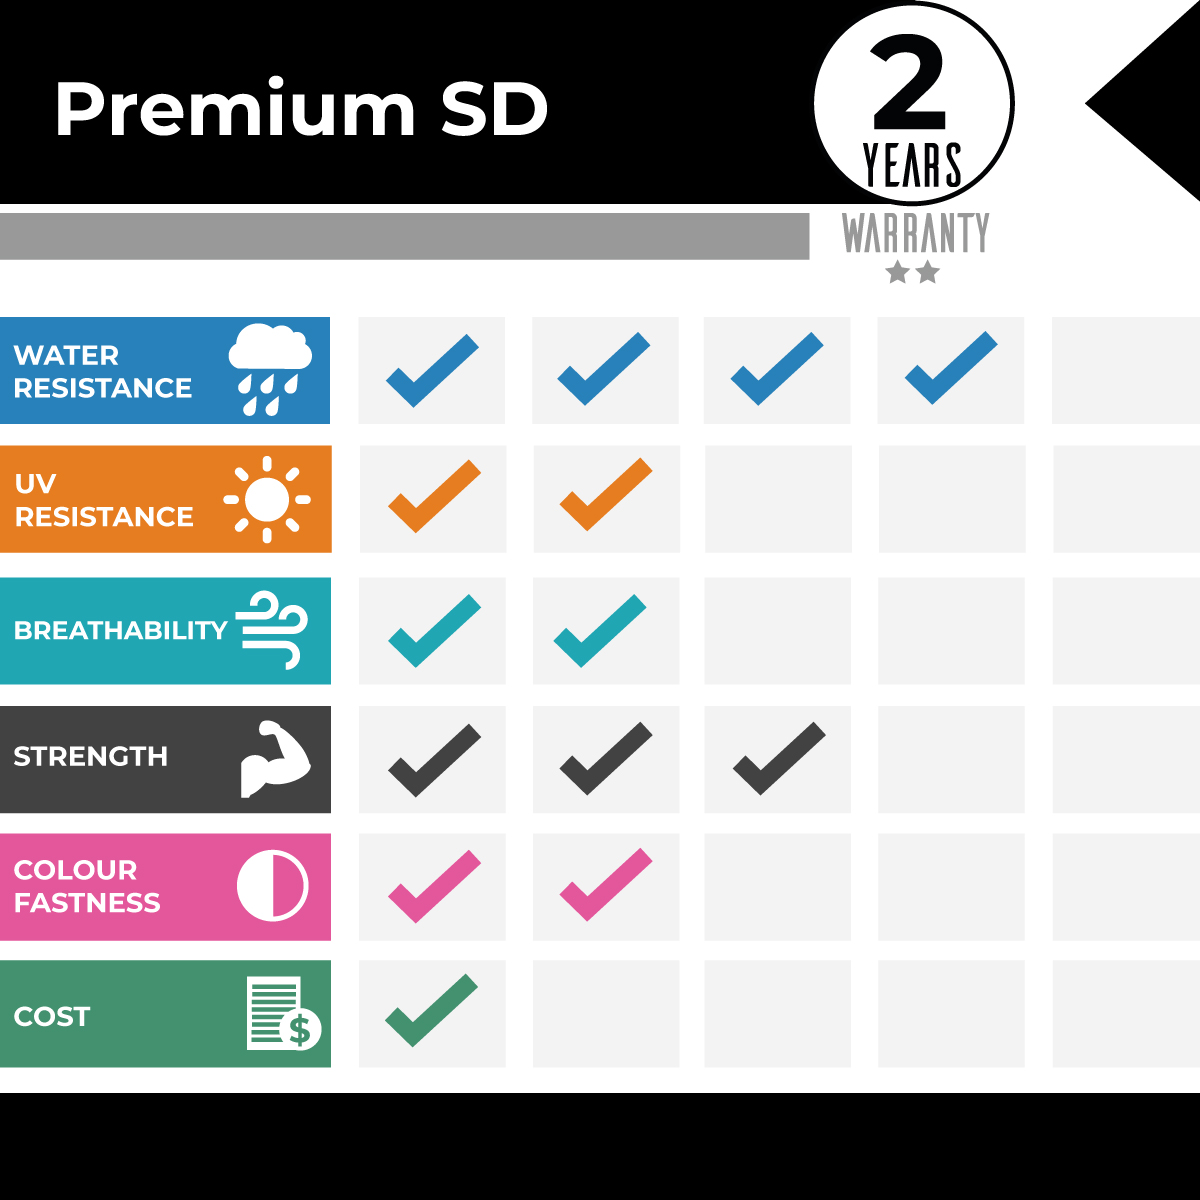 Premium SD Comparison Graph